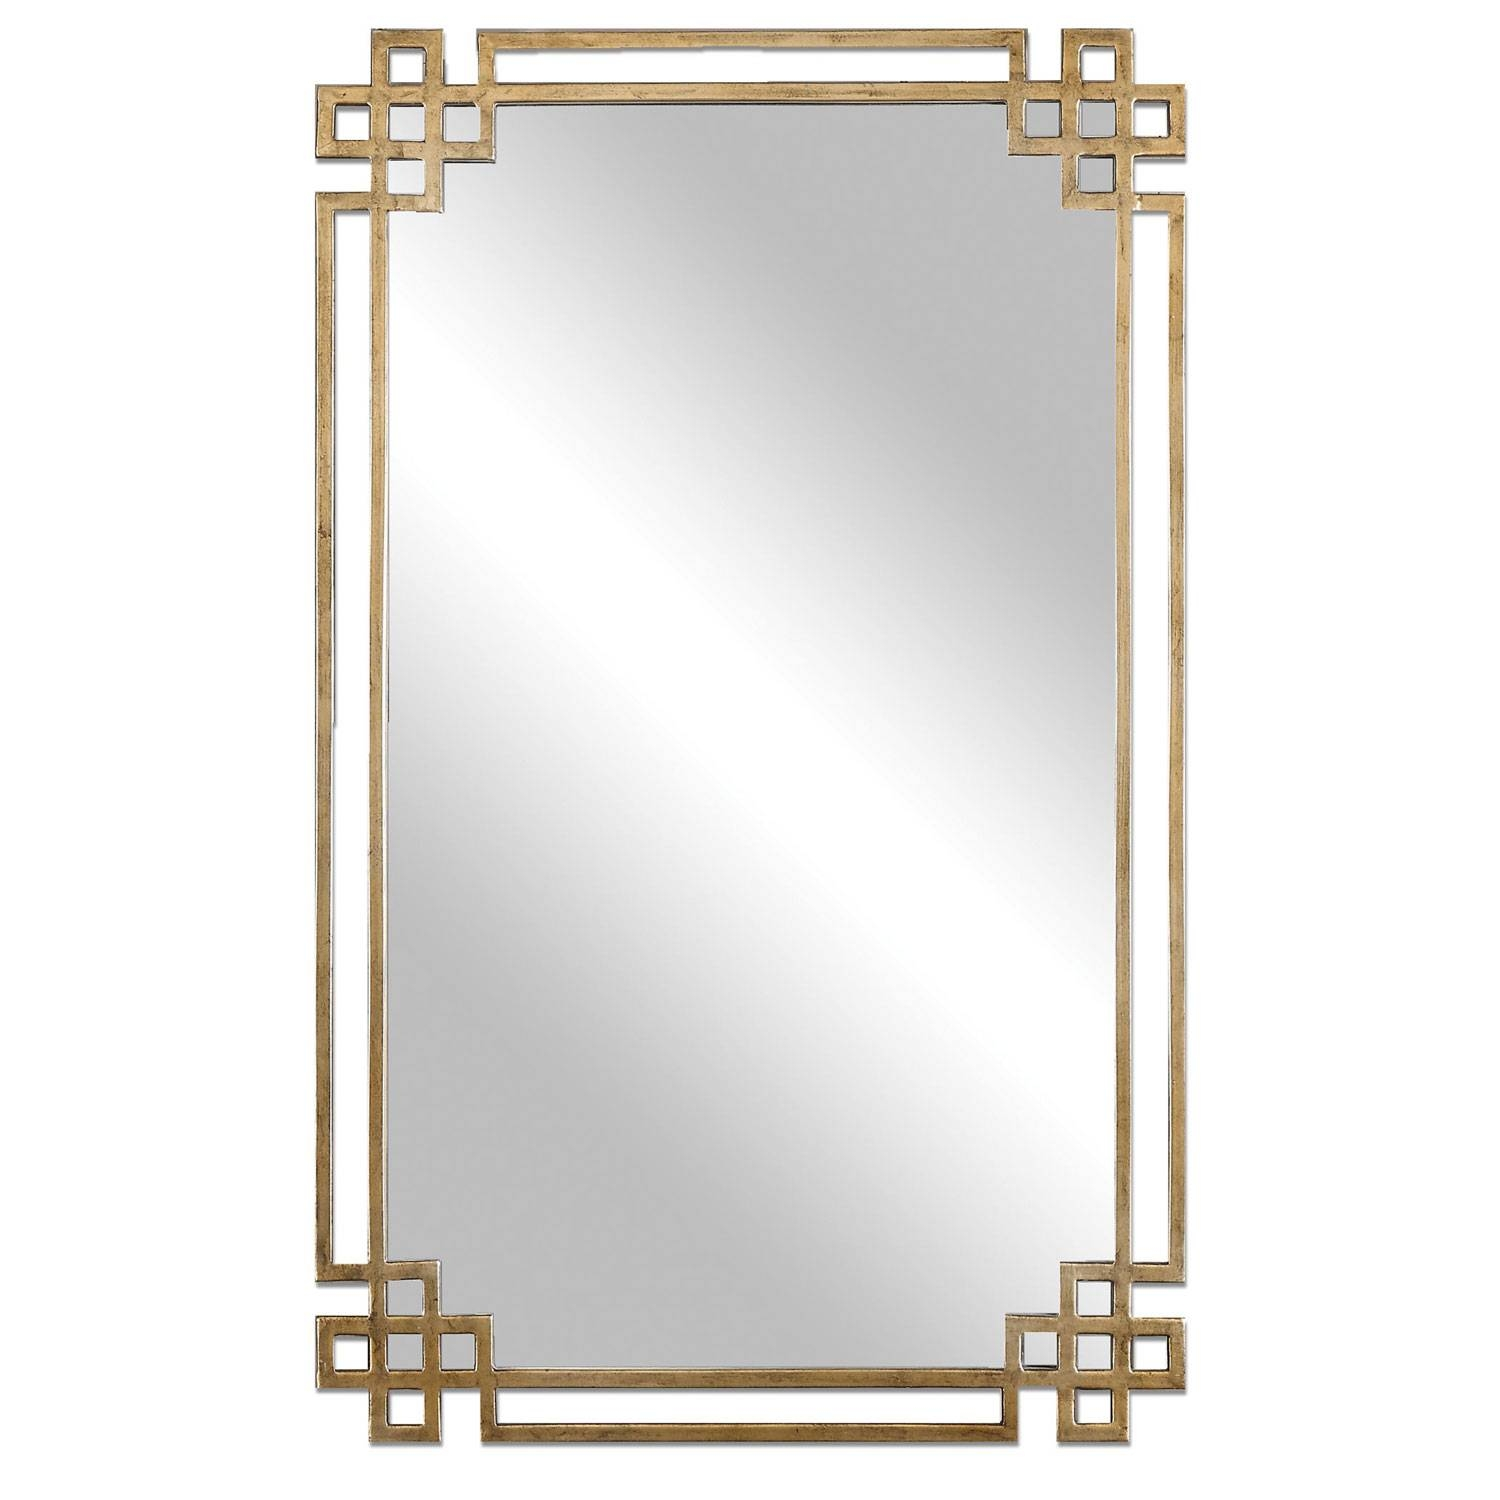 Devoll Antique Gold Mirror Uttermost Wall Mirror Mirrors Home Decor Within Gold Wall Mirrors (View 4 of 15)